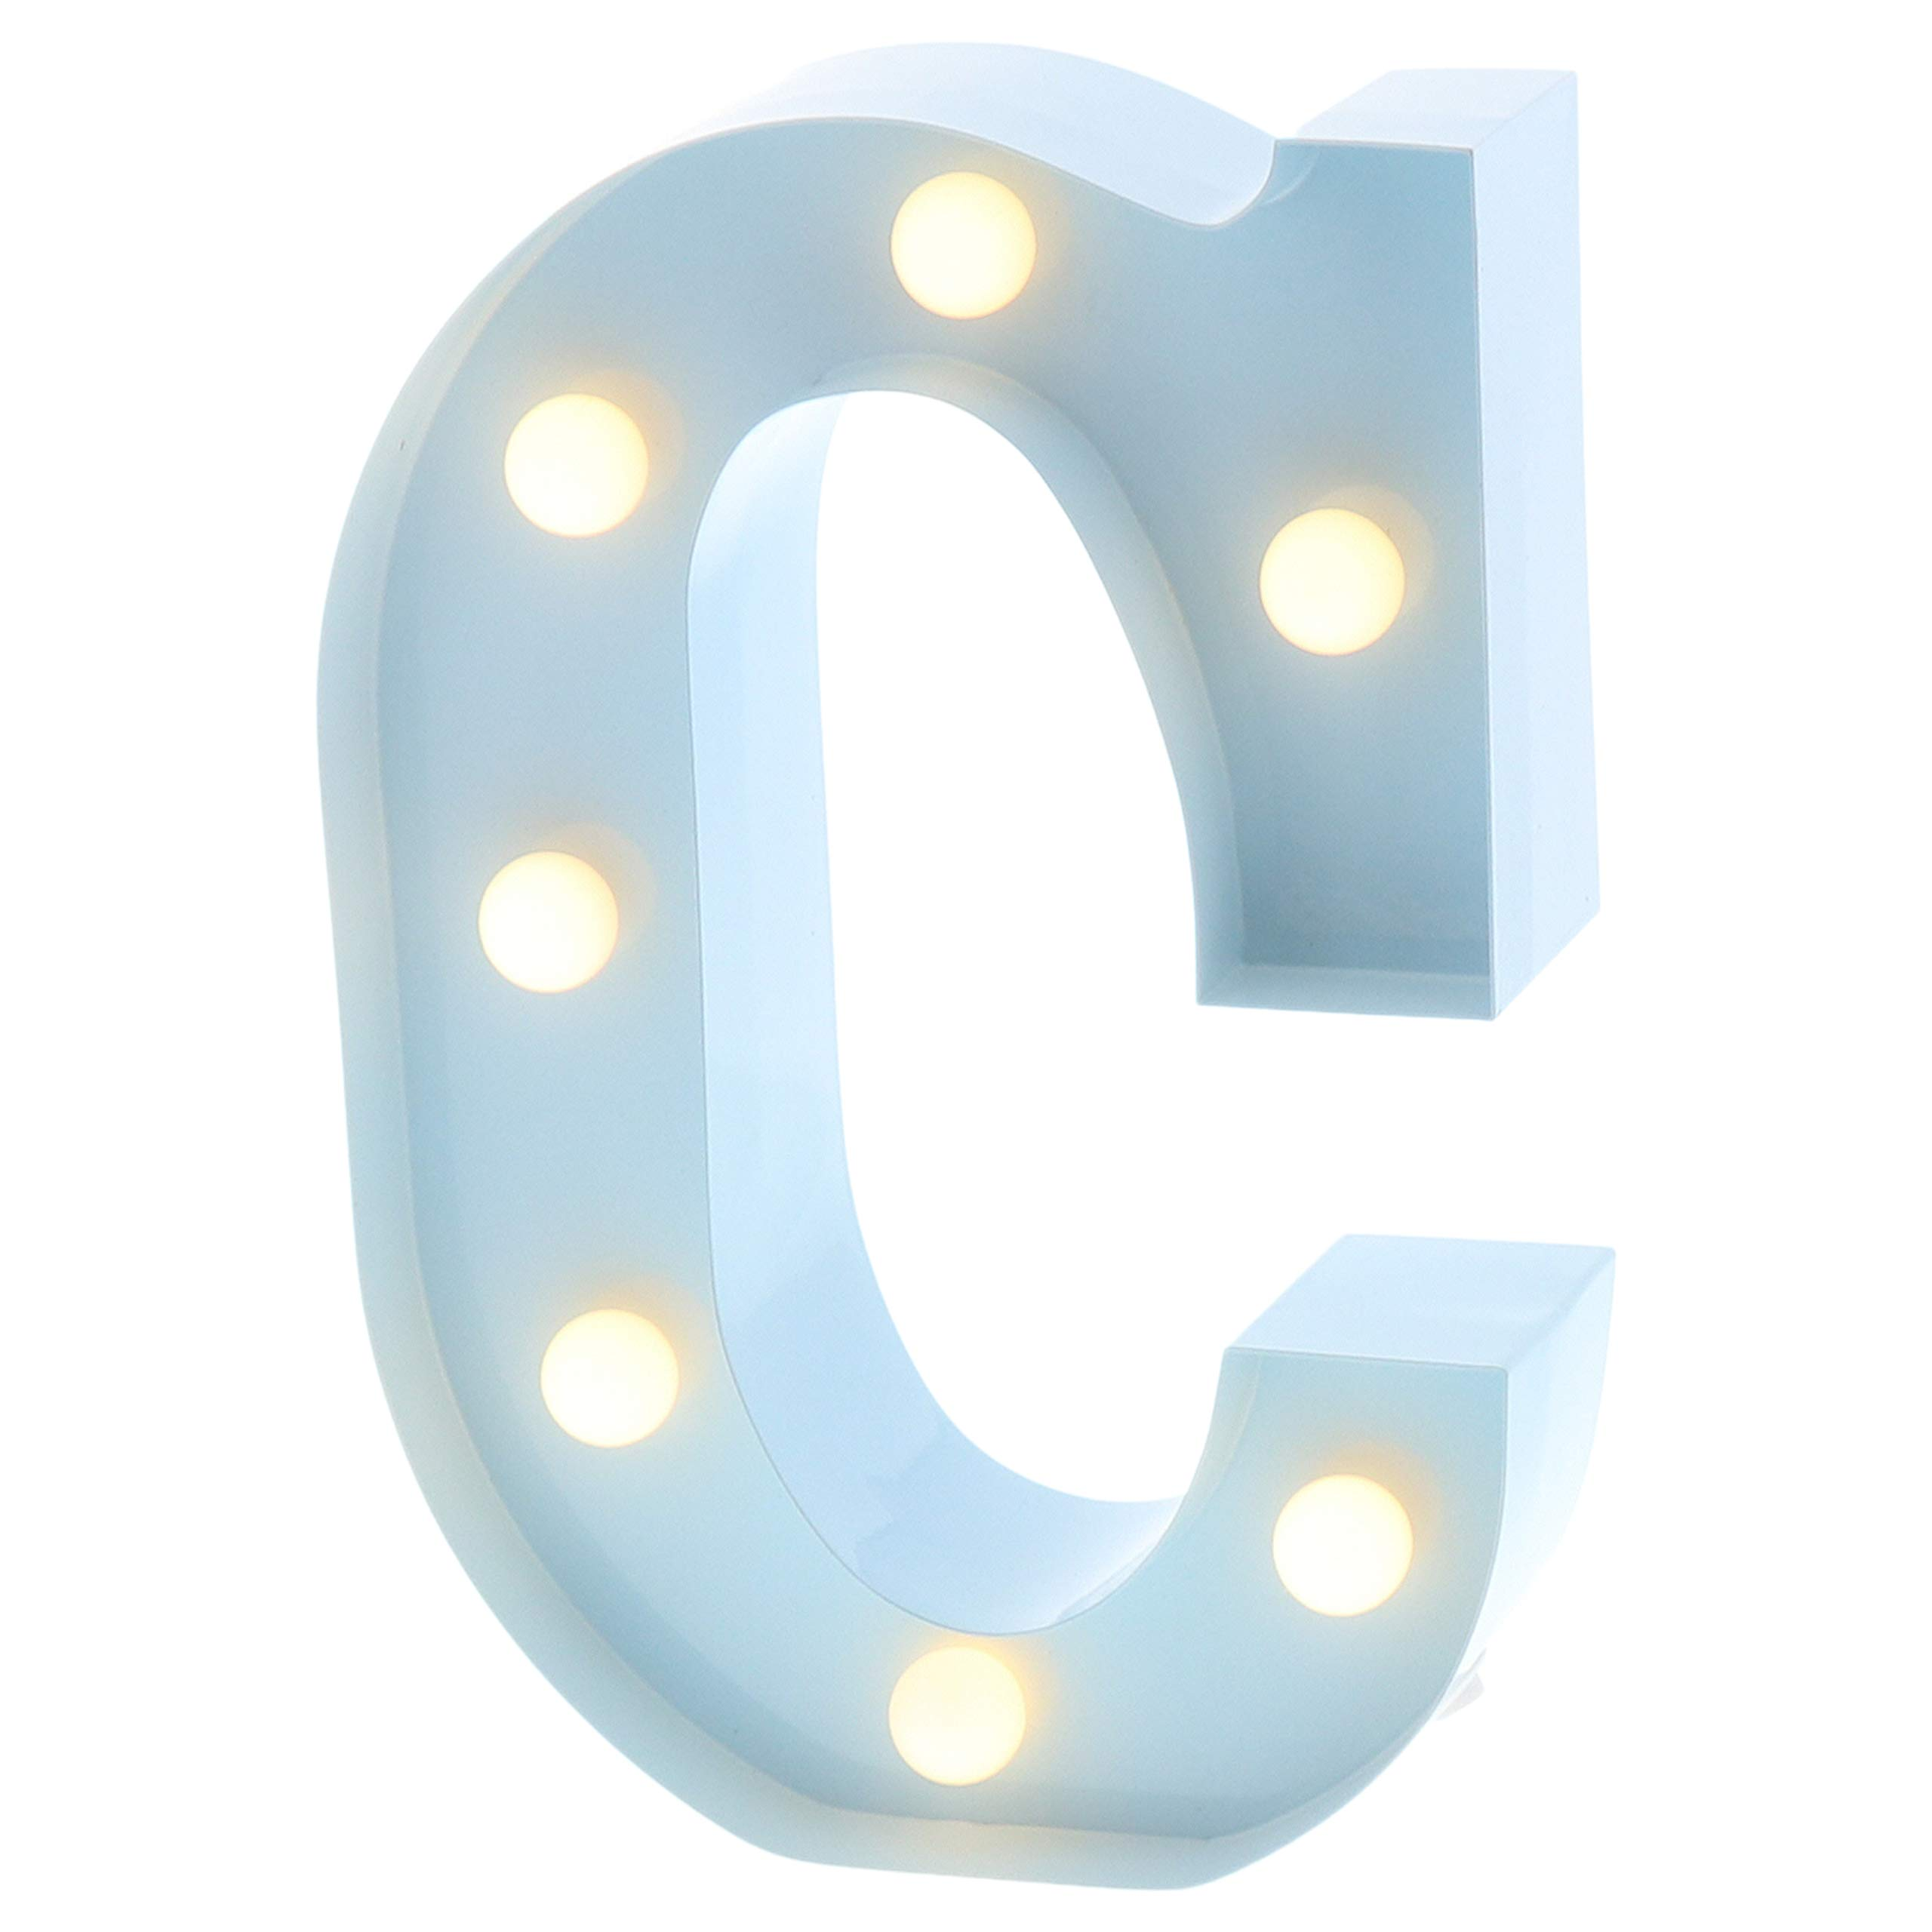 """Barnyard Designs Metal Marquee Letter Flat C Light Up Wall Initial Nursery Letter, Home and Event Decoration 9"""" (Baby Blue)"""